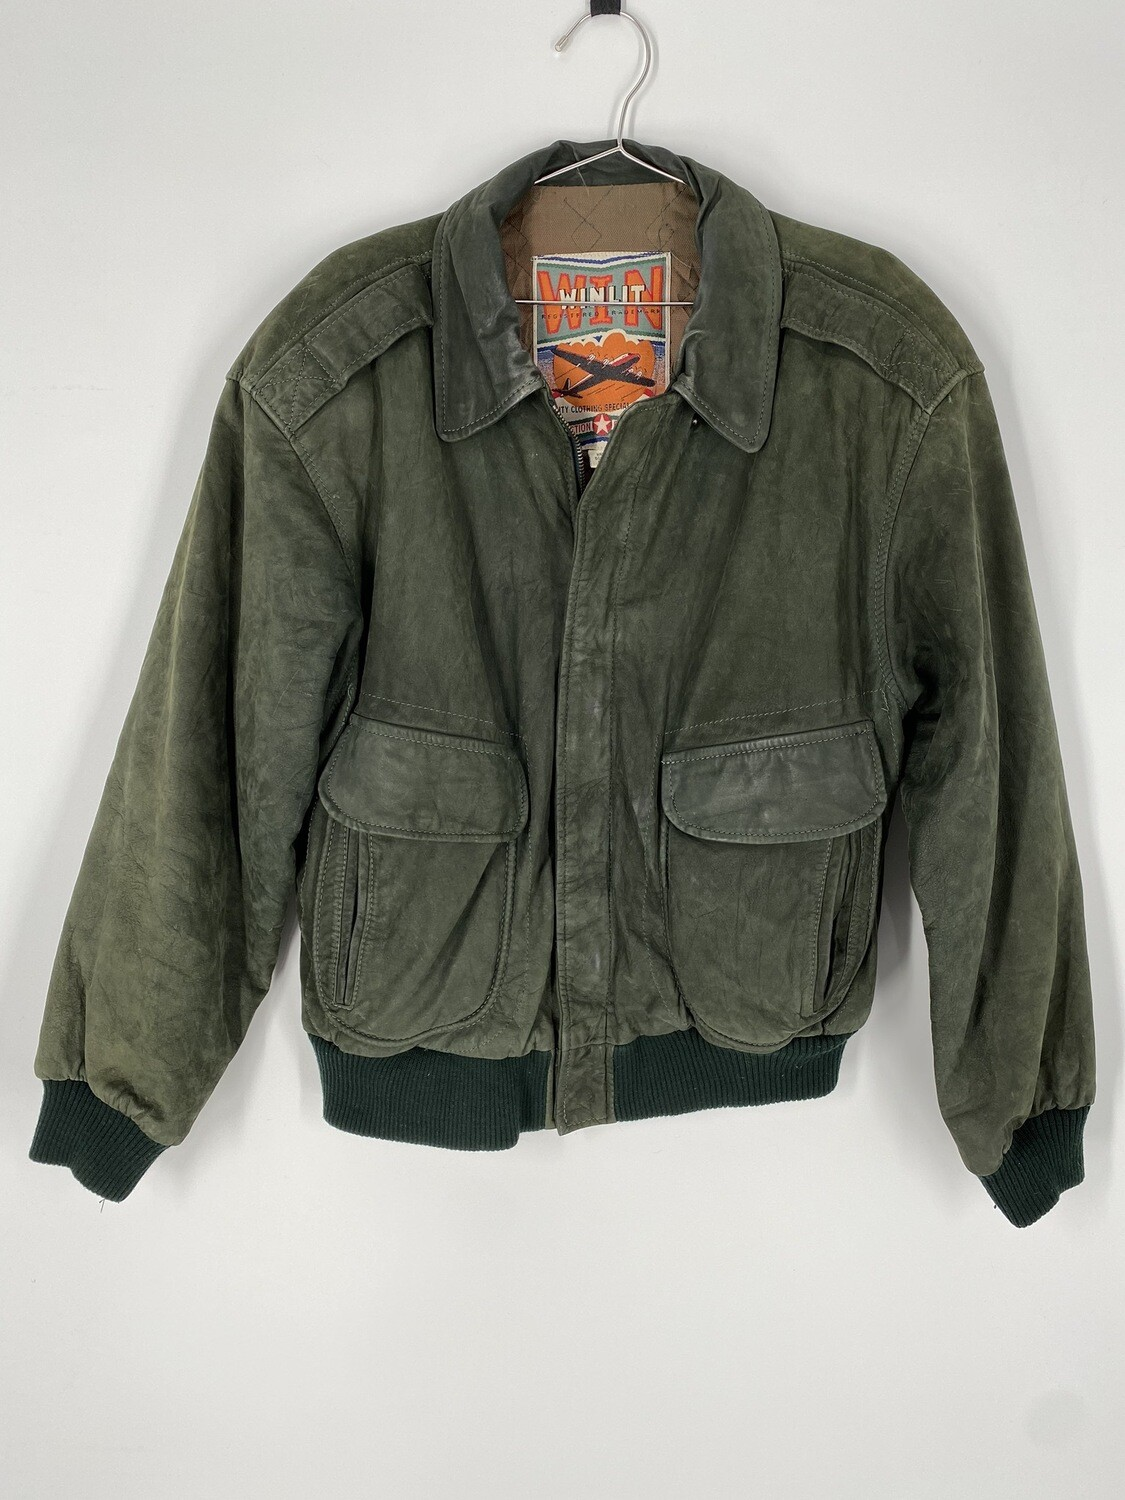 Winlit Dark Green Leather Bomber Jacket Size S